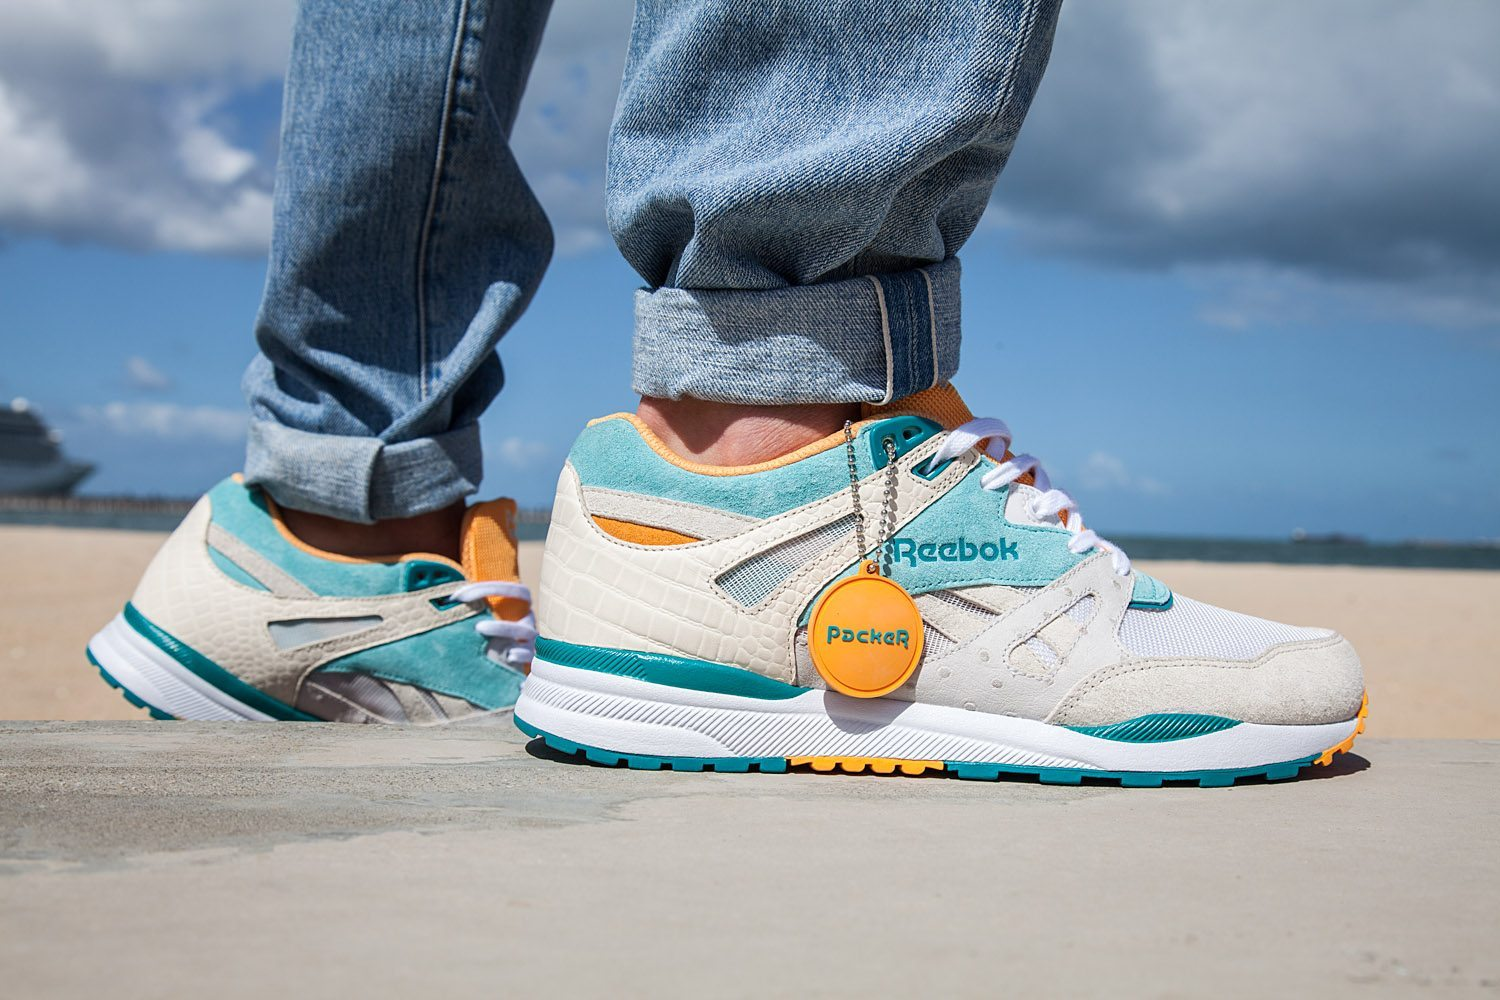 Packer Shoes x Reebok Classic Ventilator Summer 4